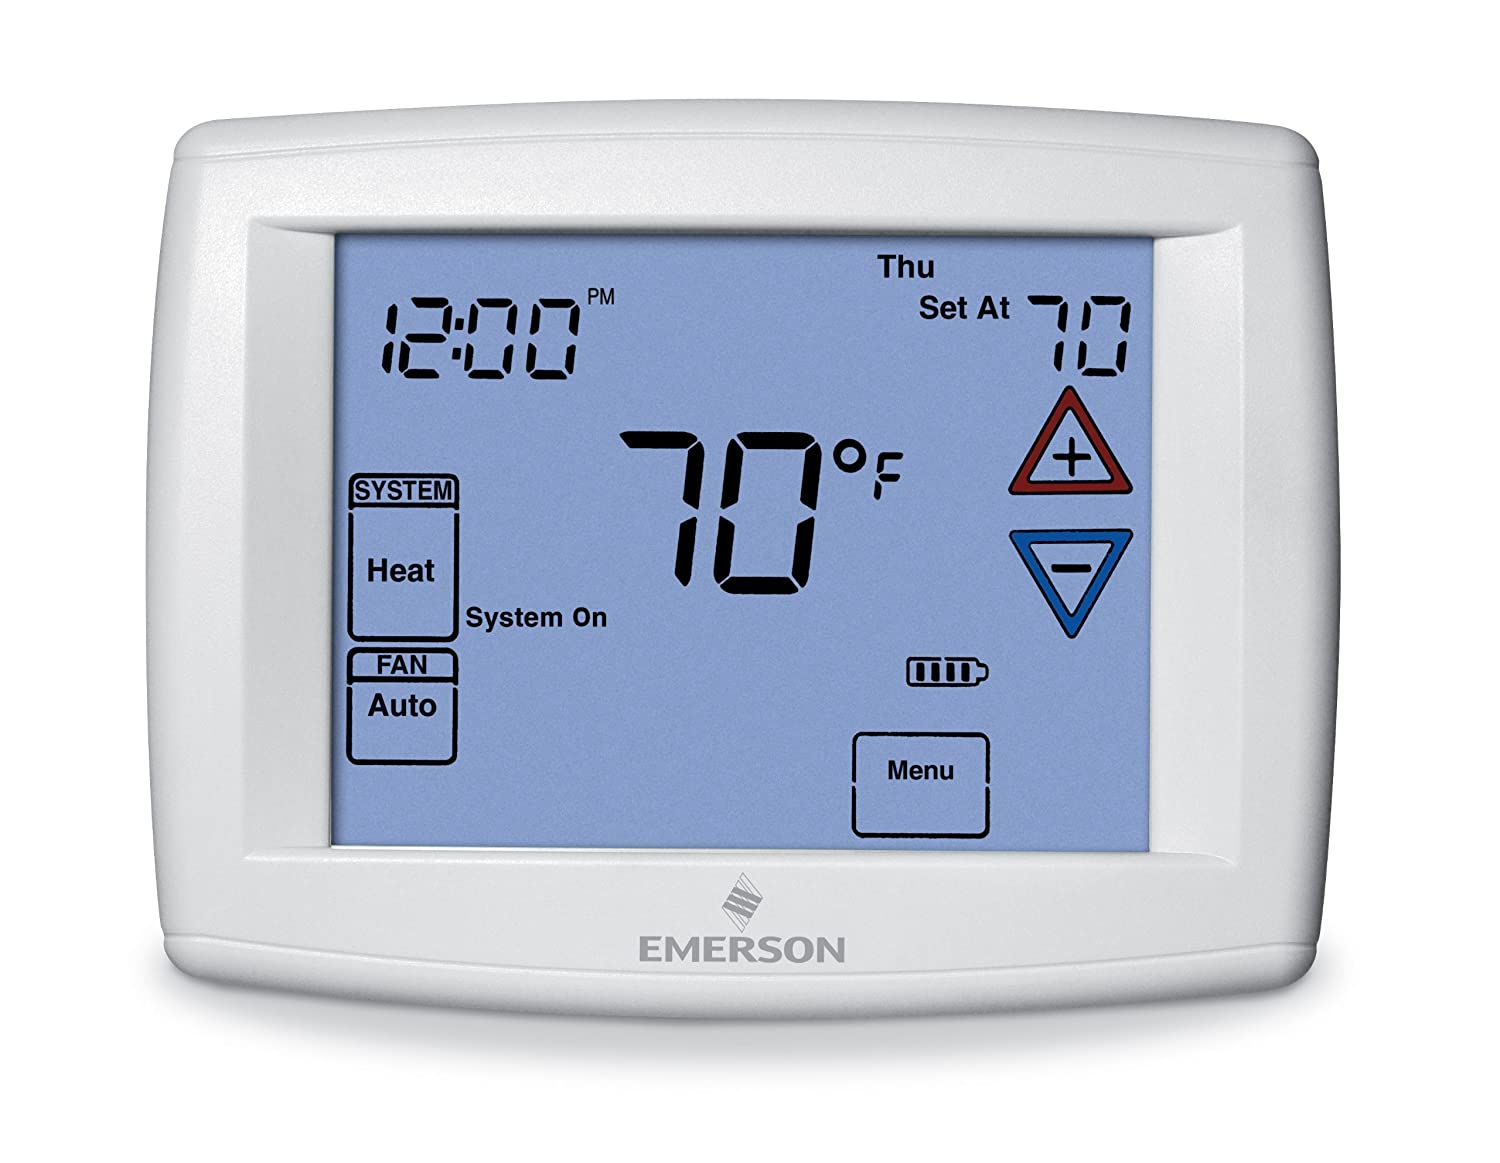 81wGARaMzOL._SL1500_ emerson 1f97 1277 touchscreen 7 day programmable thermostat for  at creativeand.co